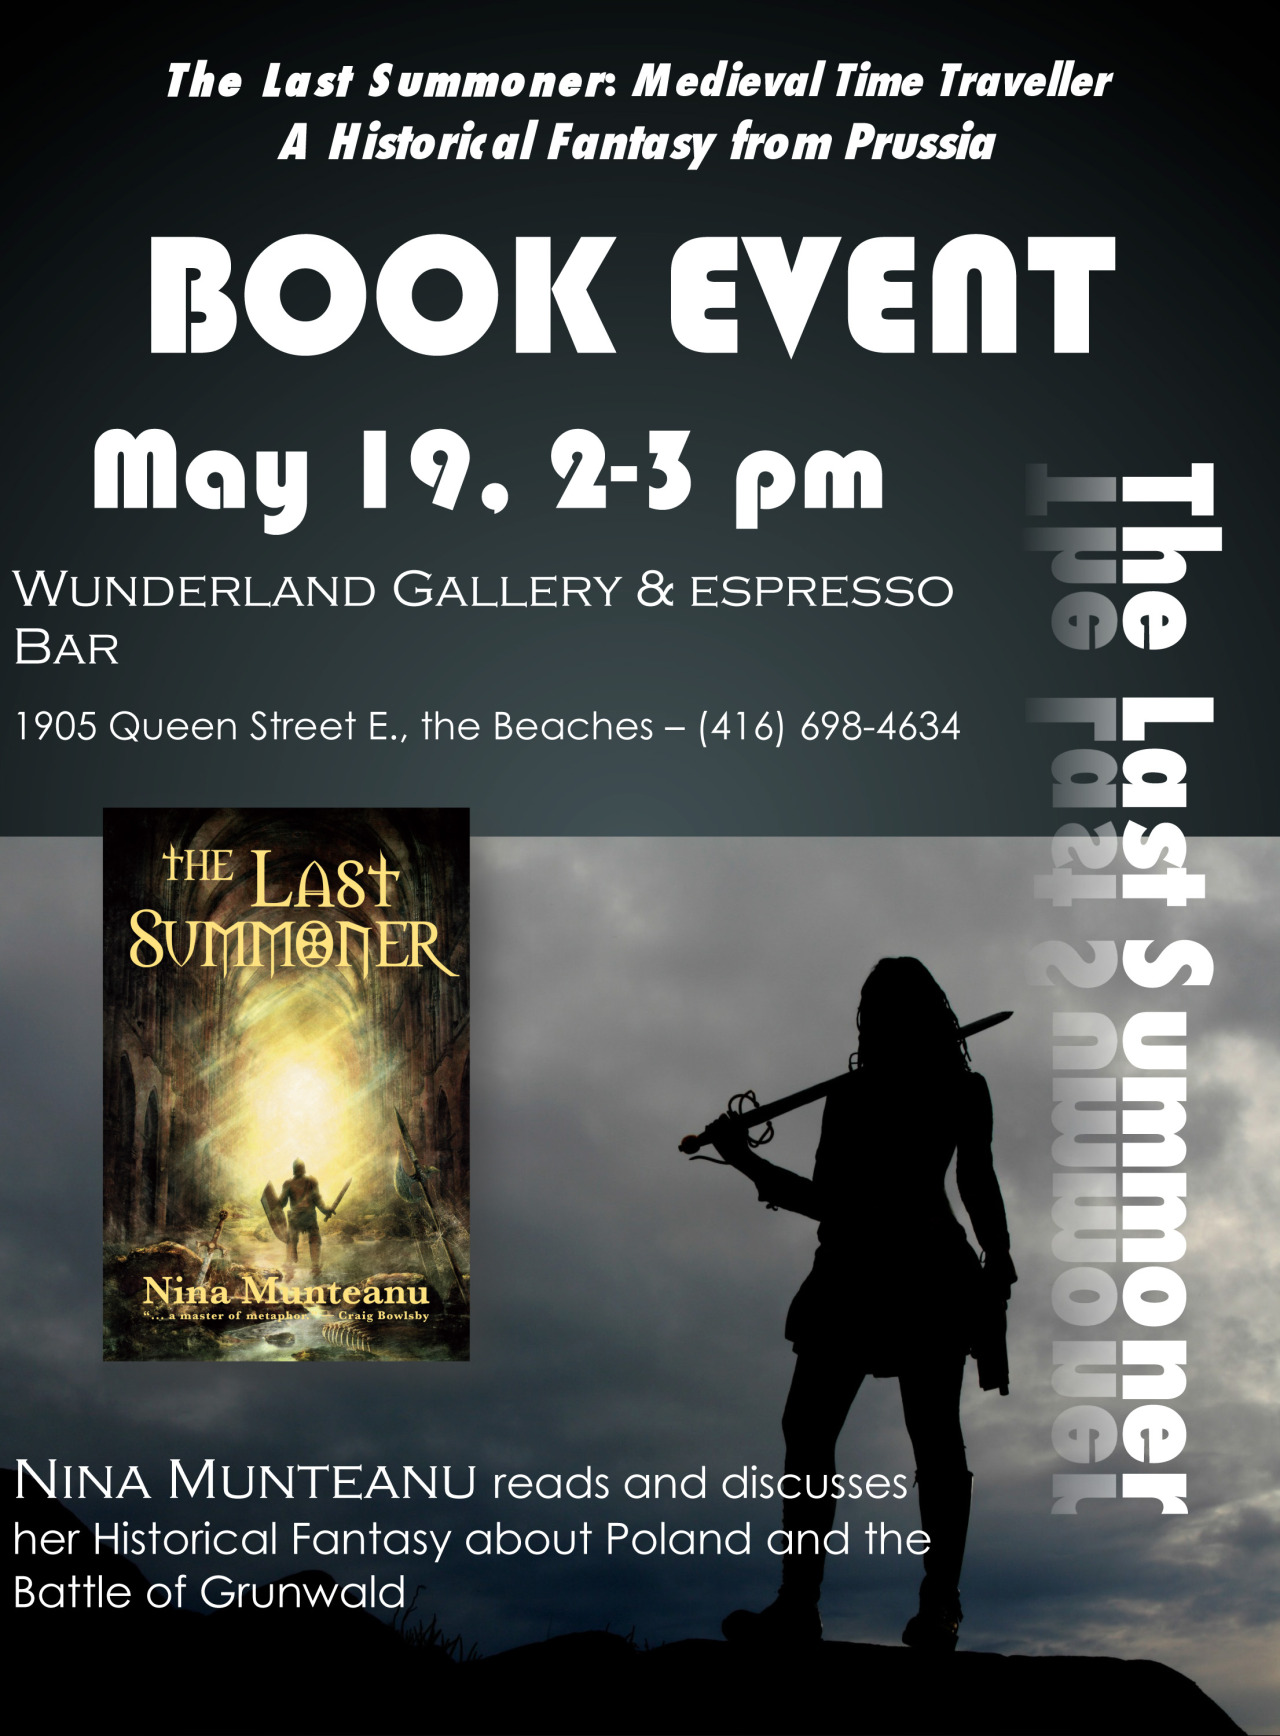 tumblr mmz4bgyKrg1rfn0sio1 1280 Nina Munteanu Reads The Last Summoner